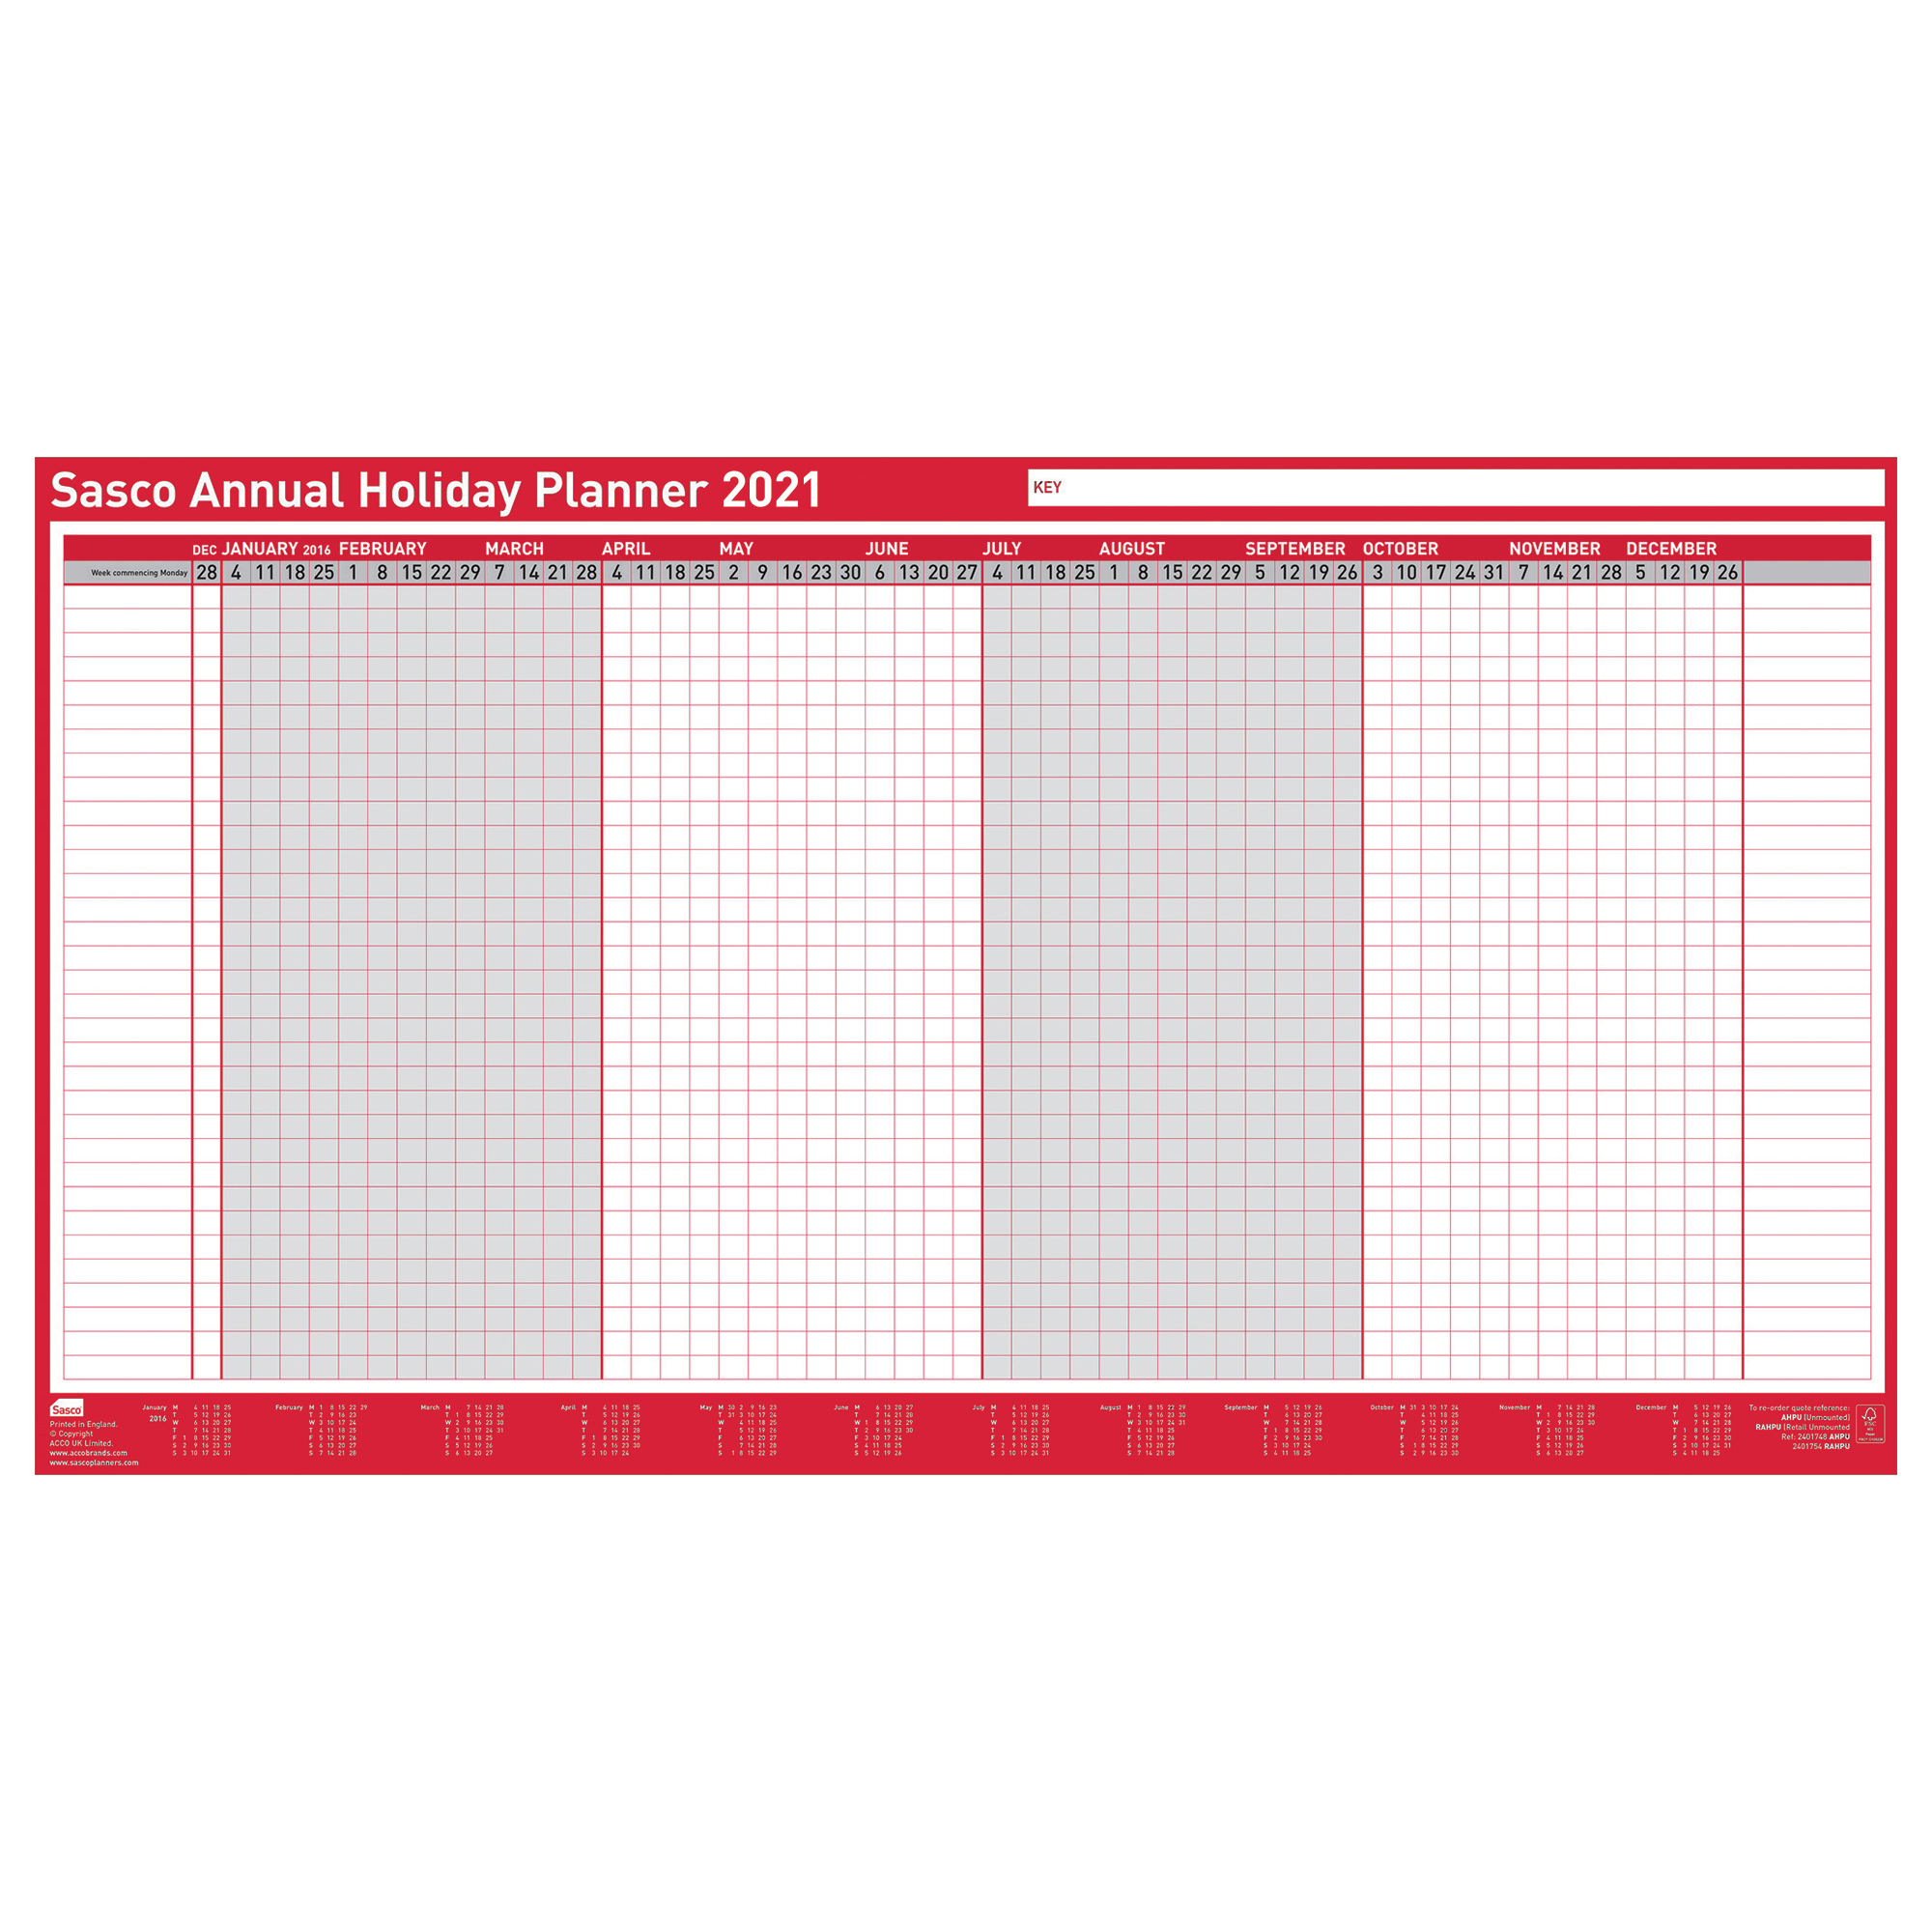 Wall planners Sasco 2021 Annual Holiday Planner Unmounted Landscape 750x410mm Ref 2410142